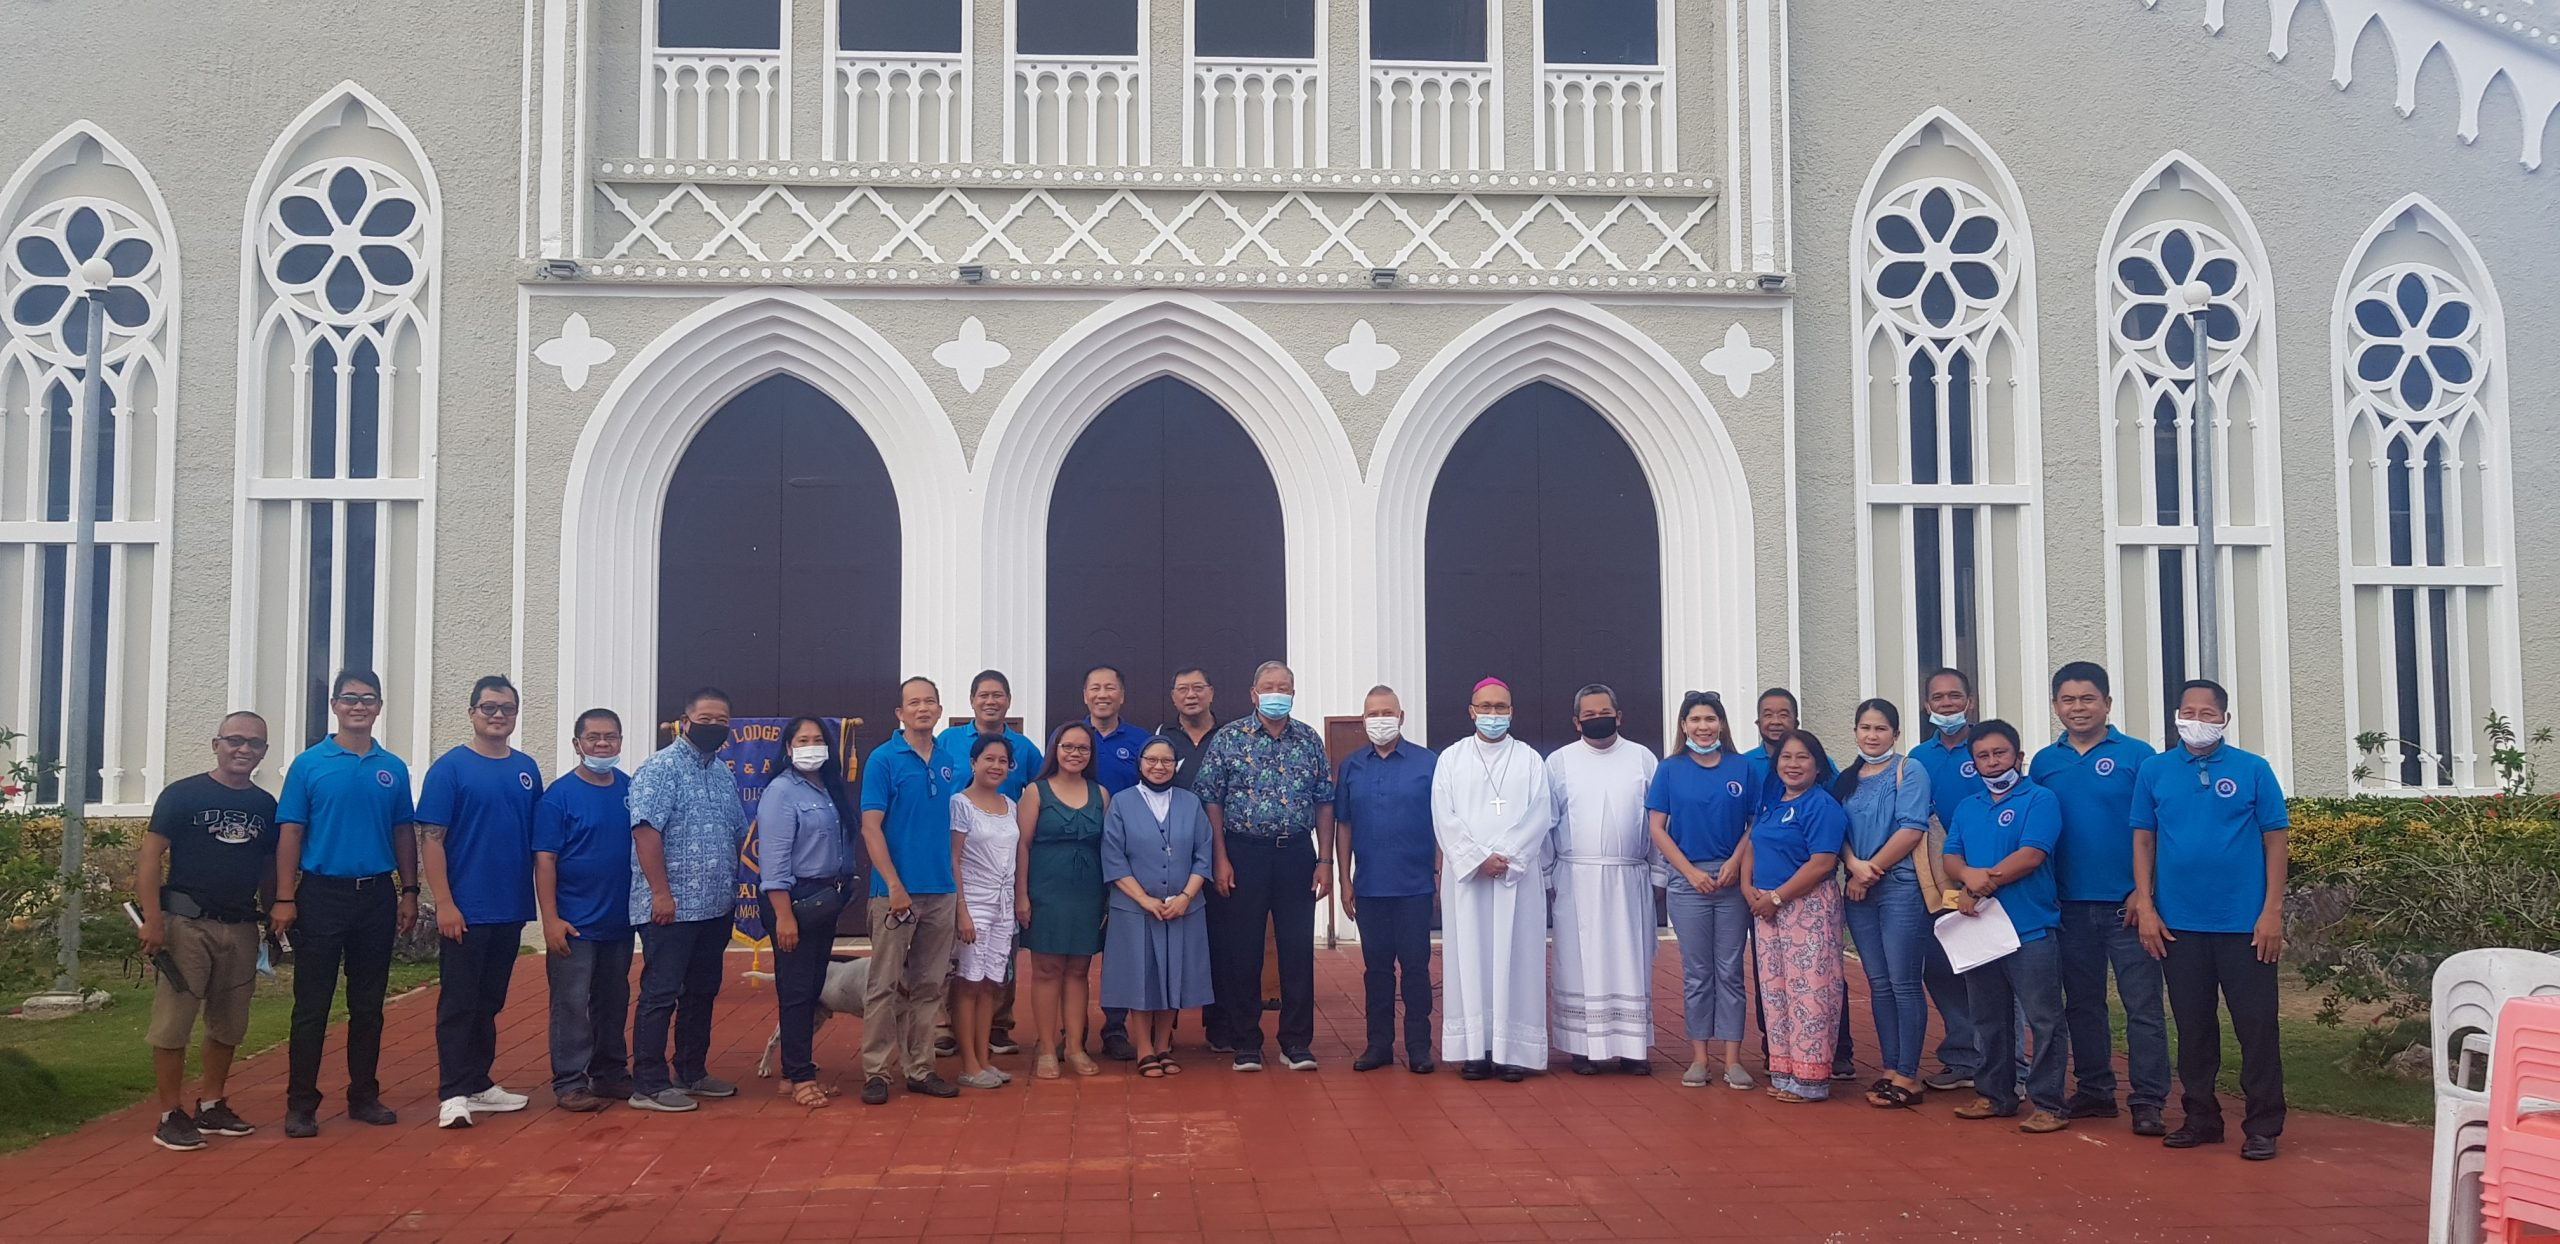 Micronesia - Freemasons install new tower clock at Mount Carmel Cathedral